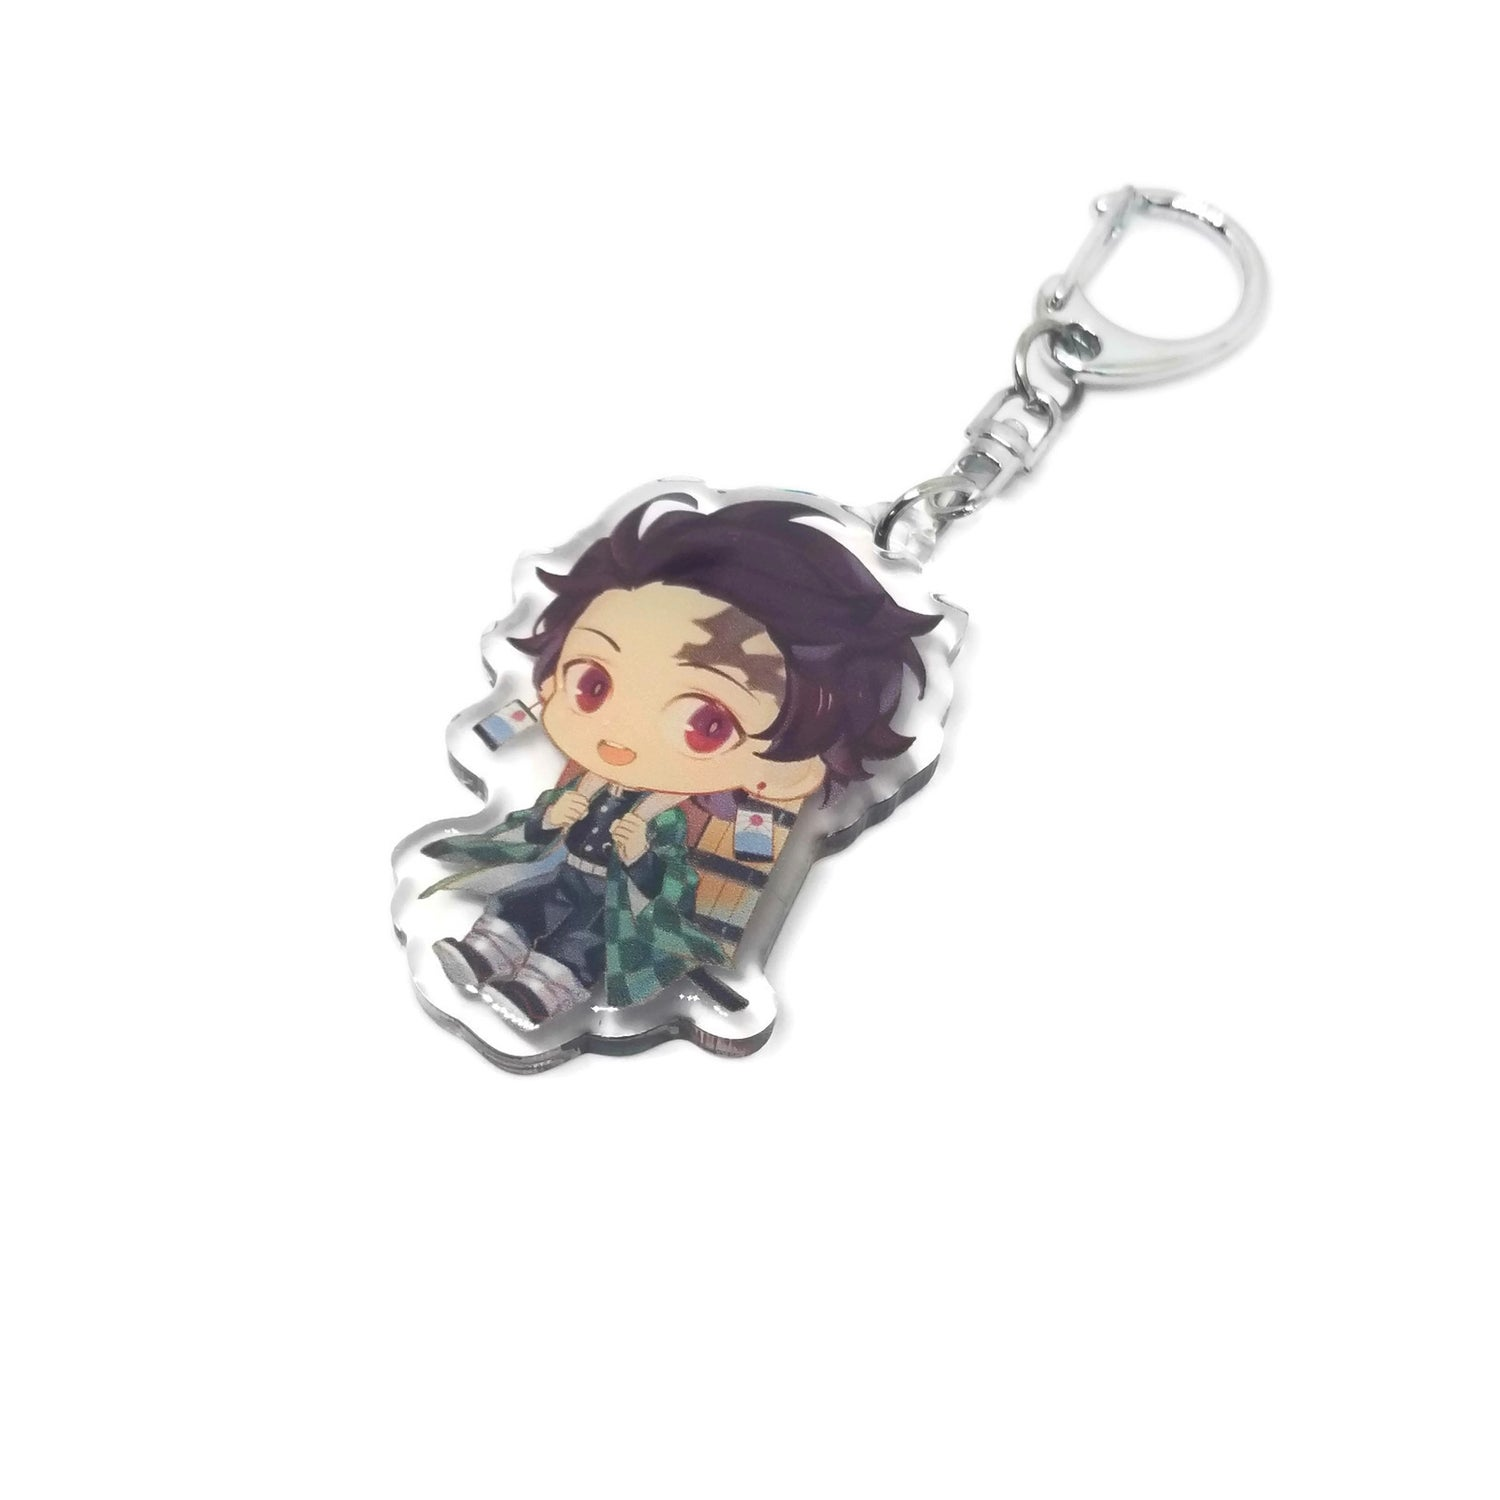 Image of DS Acrylic Charm